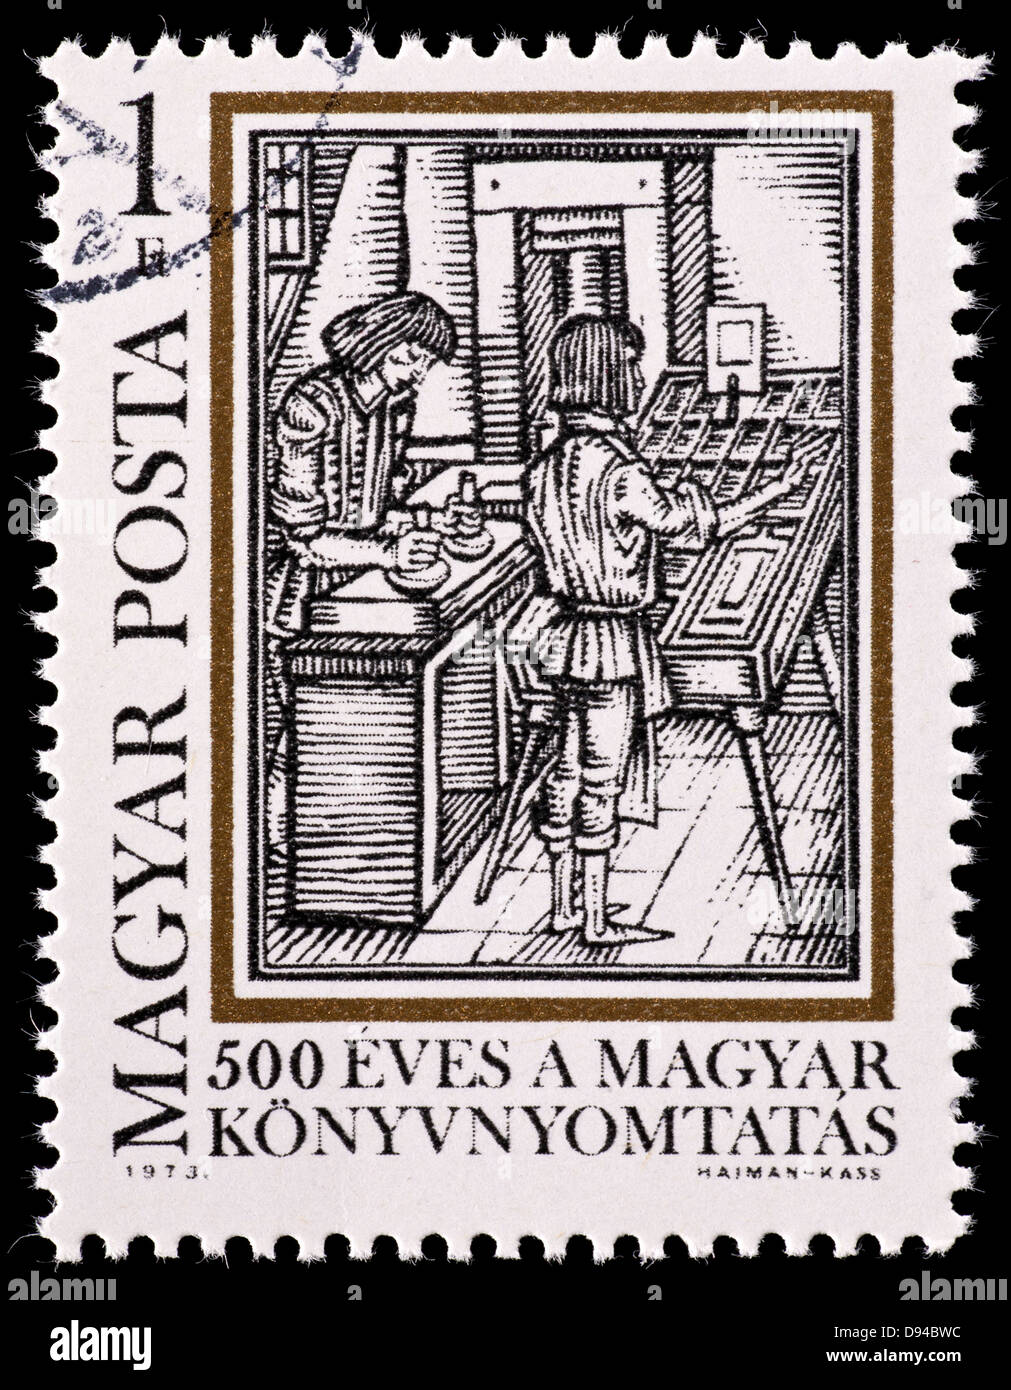 Postage stamp from Hungary depicting typesetting, from 'Orbis Pictus' by Comenius. for the 500'th anniversary - Stock Image